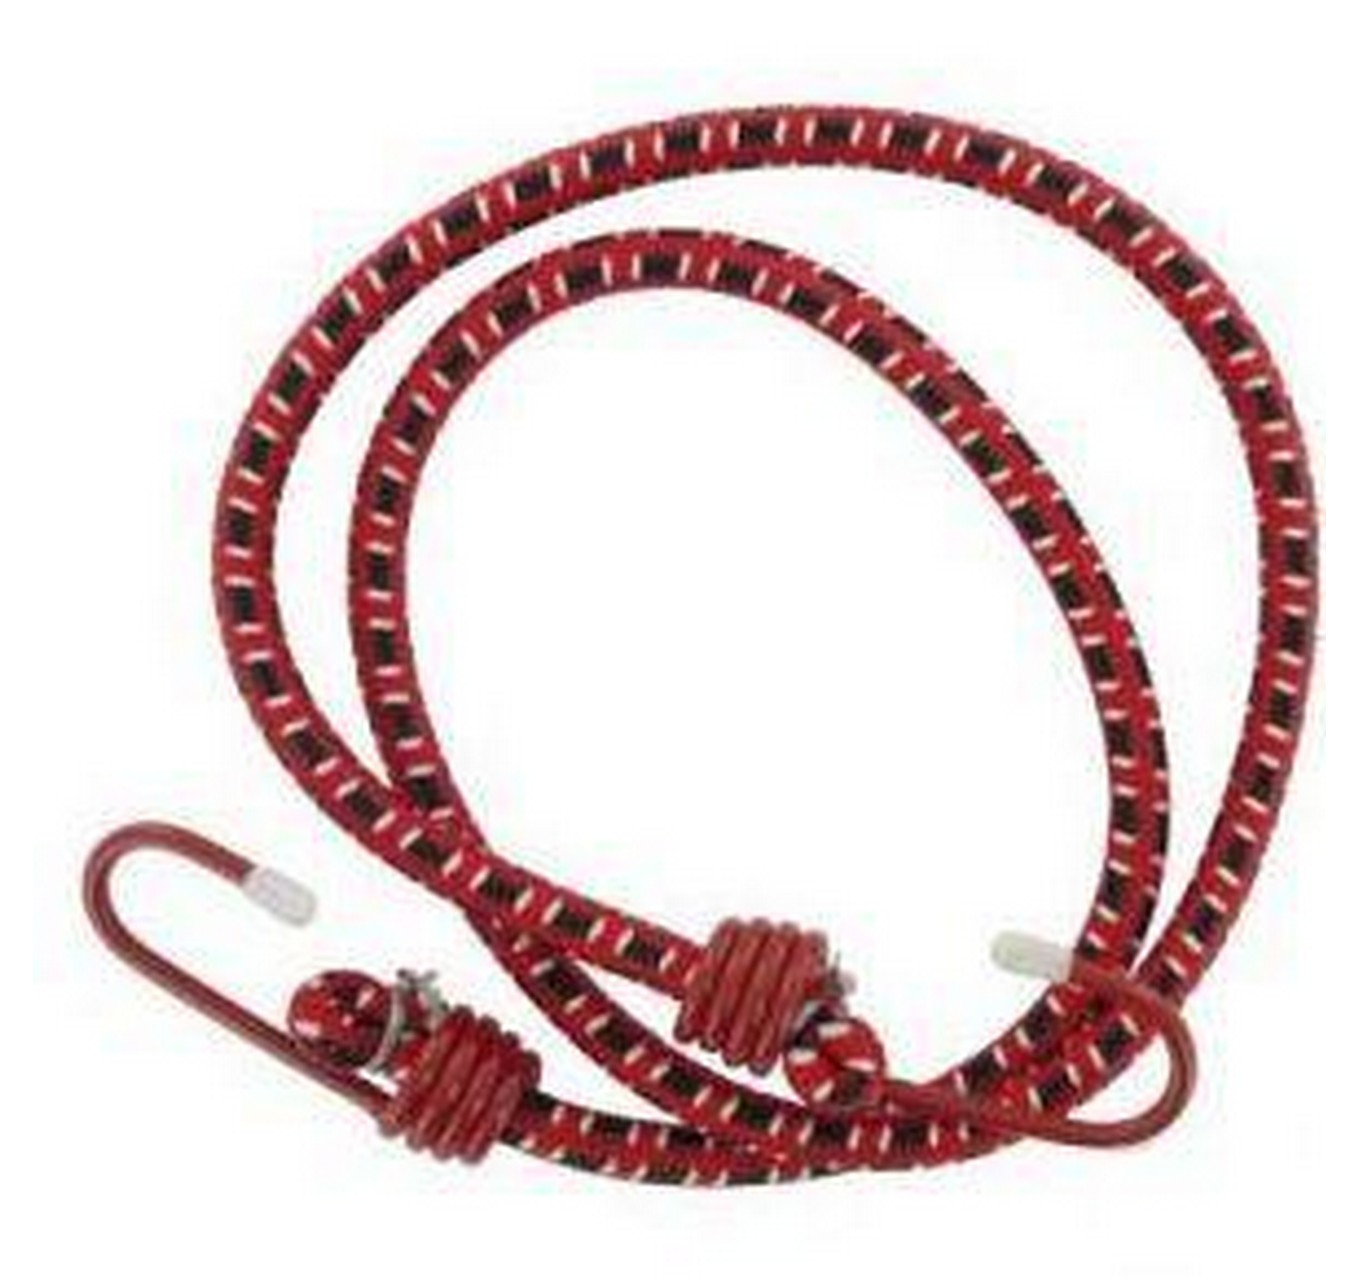 Bungee Cord With Hooks  - 1m